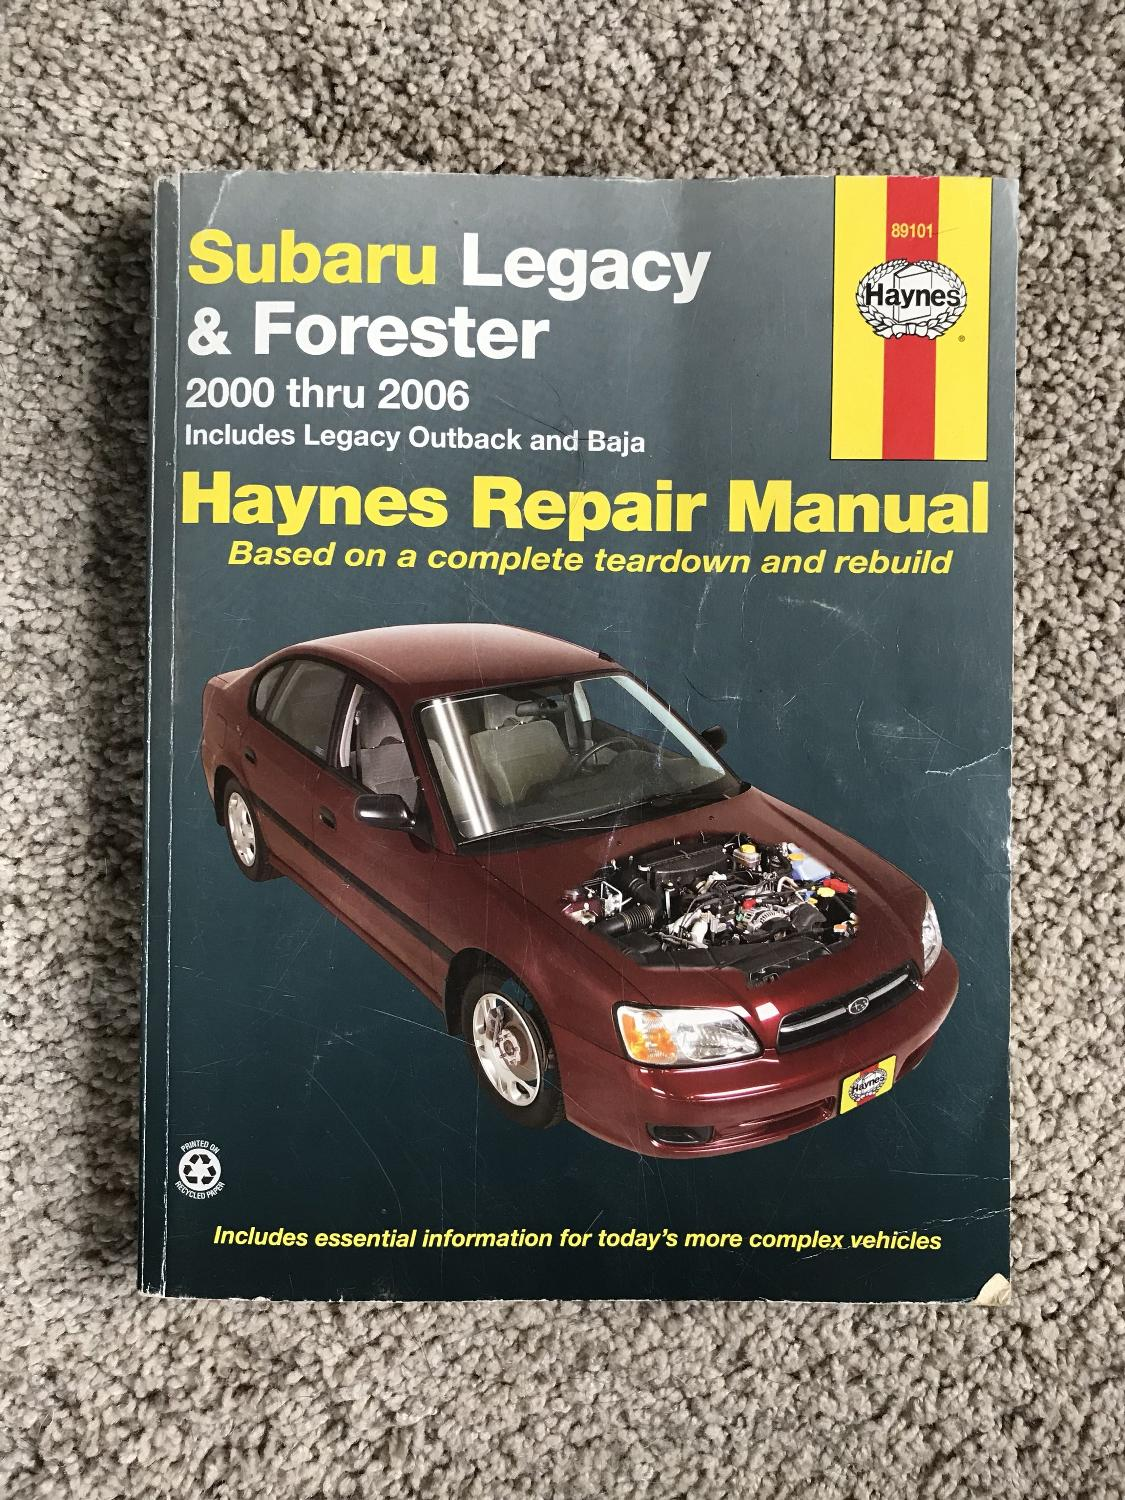 Best Subaru Legacy & Forester Repair Manual for sale in Richmond, Virginia  for 2018